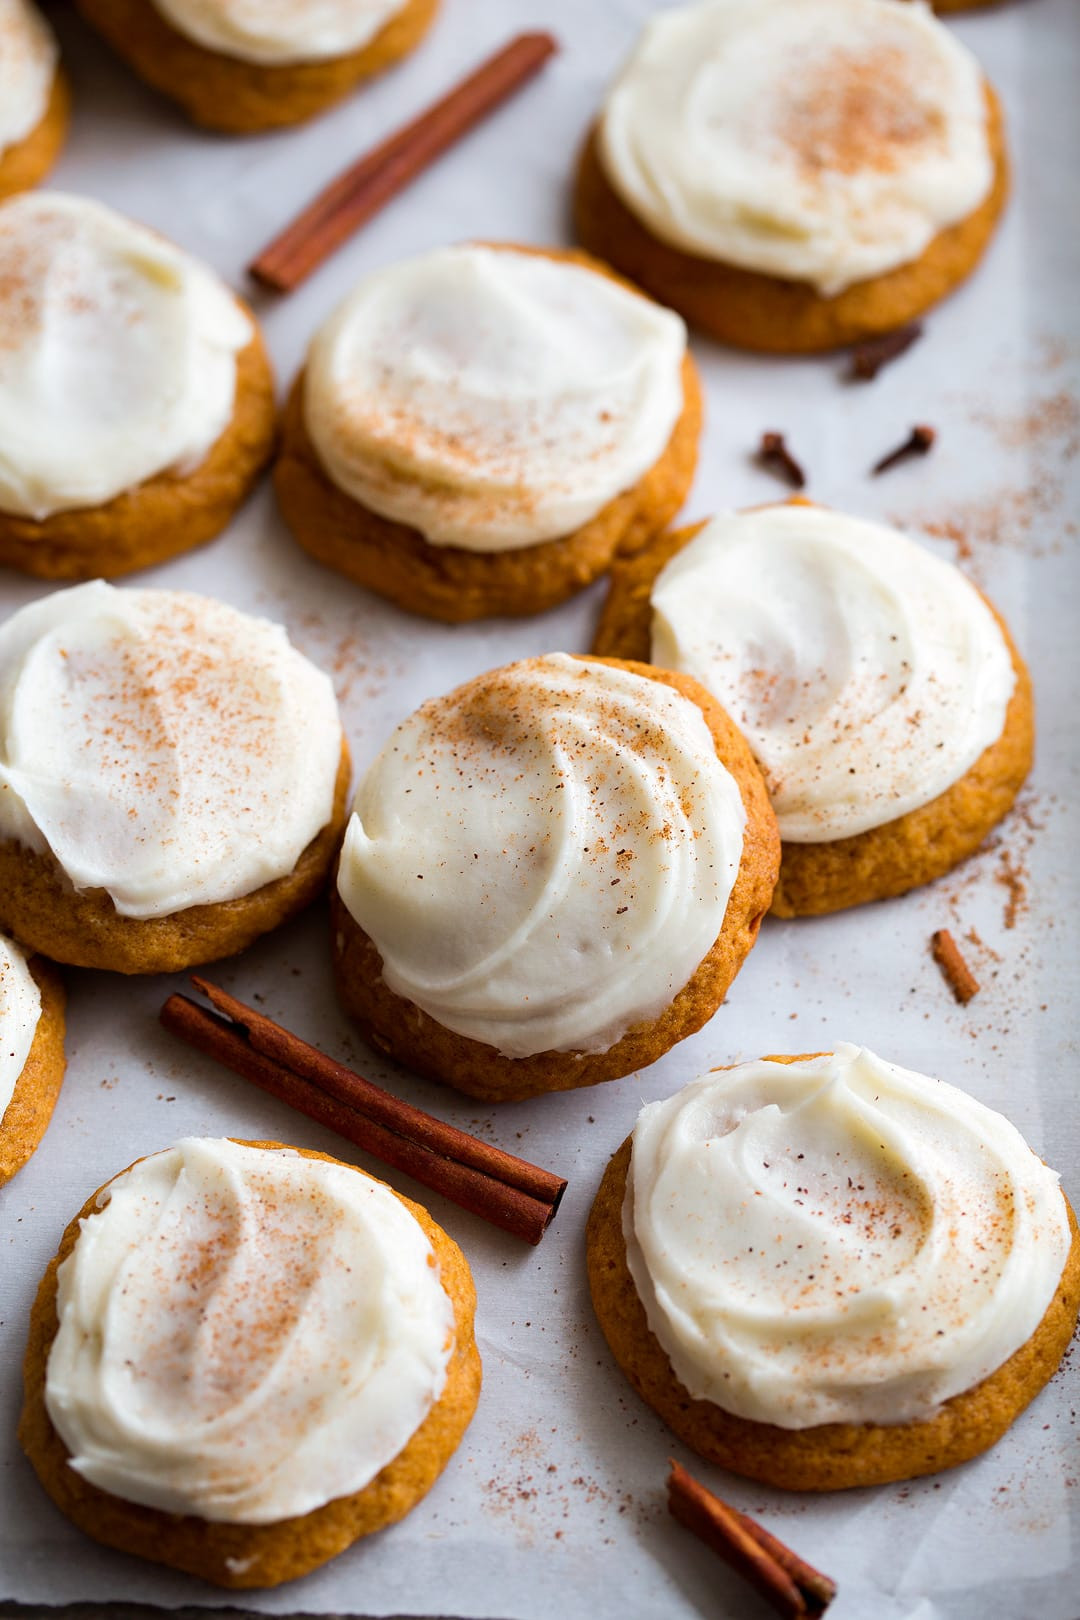 Pumpkin Cookies With Cream Cheese Frosting  Pumpkin Cookies with Cream Cheese Frosting Cooking Classy